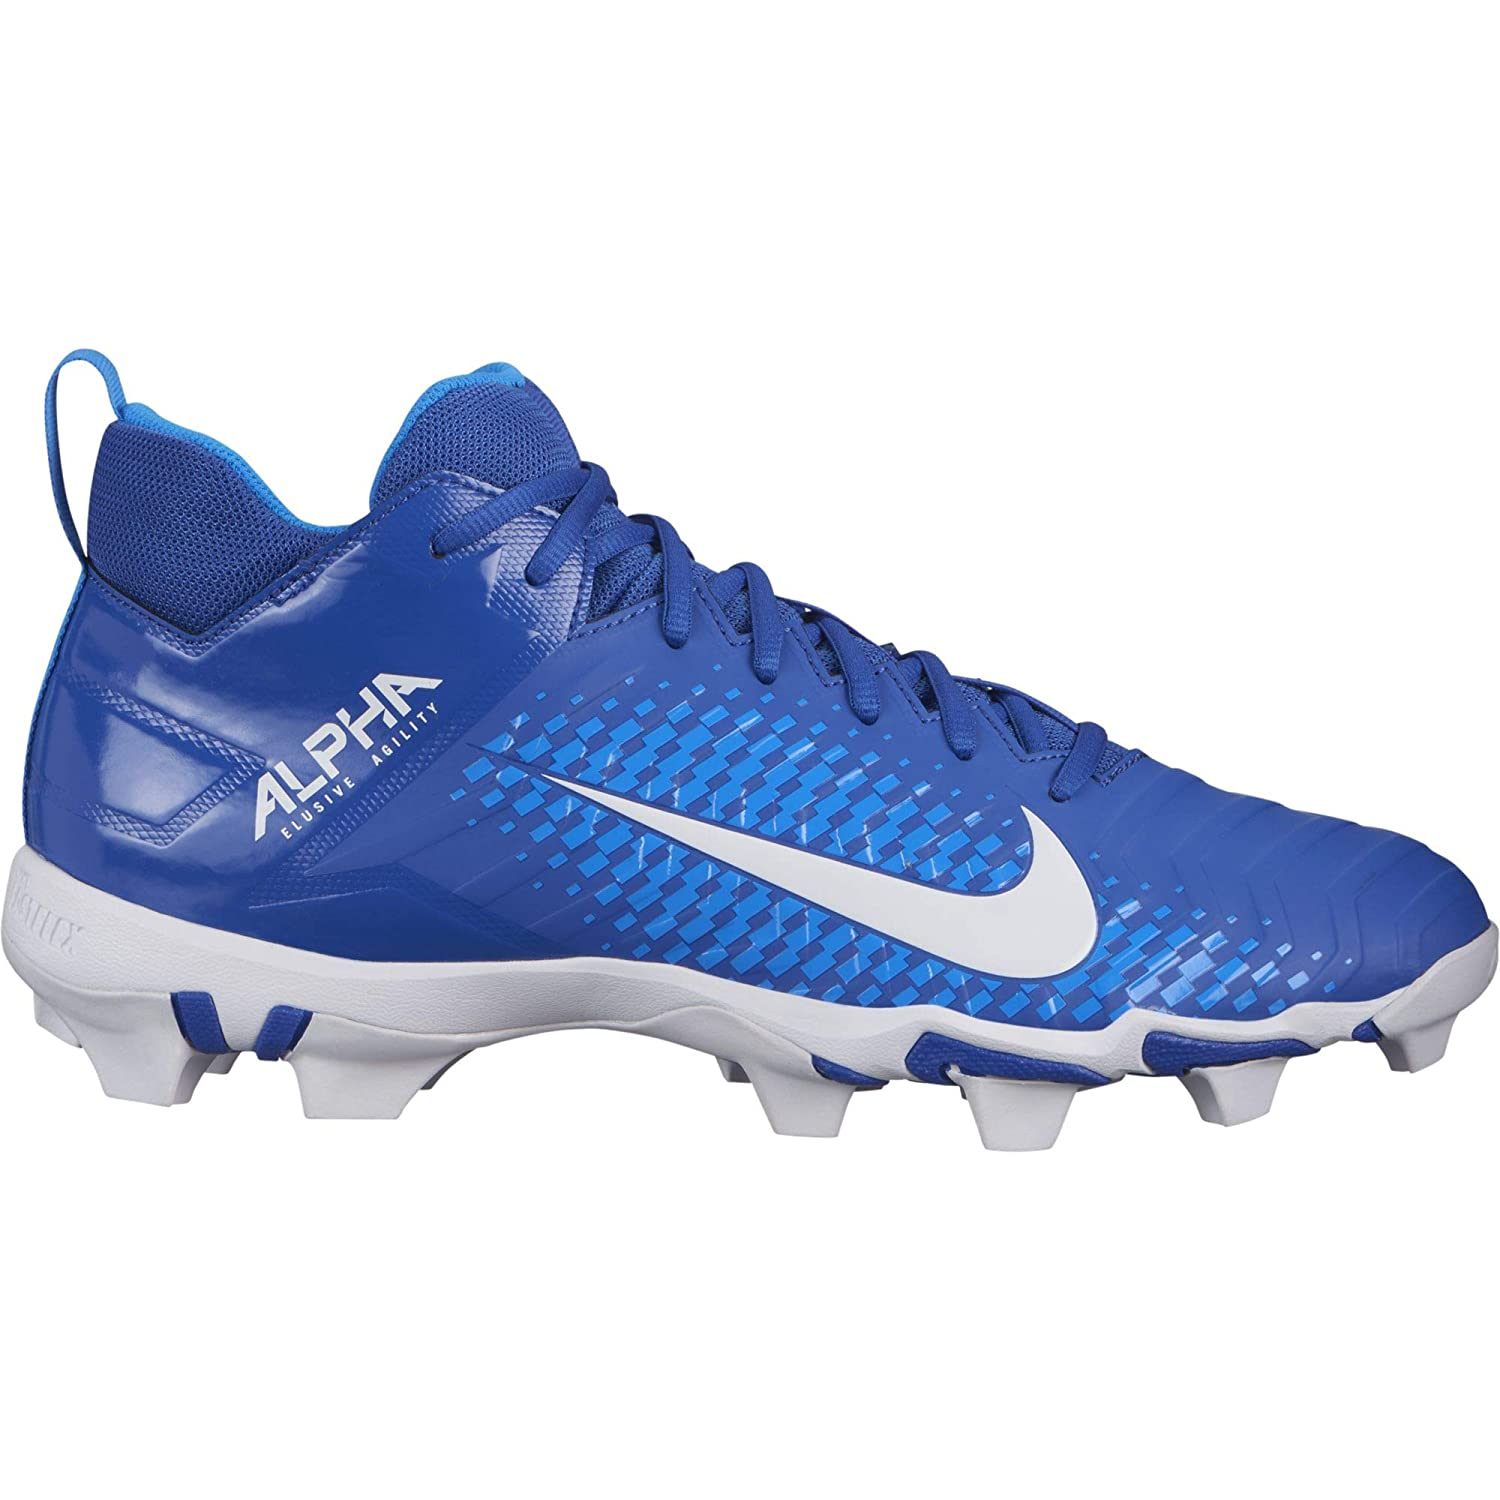 Nike Men's Alpha Menace 2 Shark Football Cleat Game Royal/白い/Photo 青 Size 9.5 M US